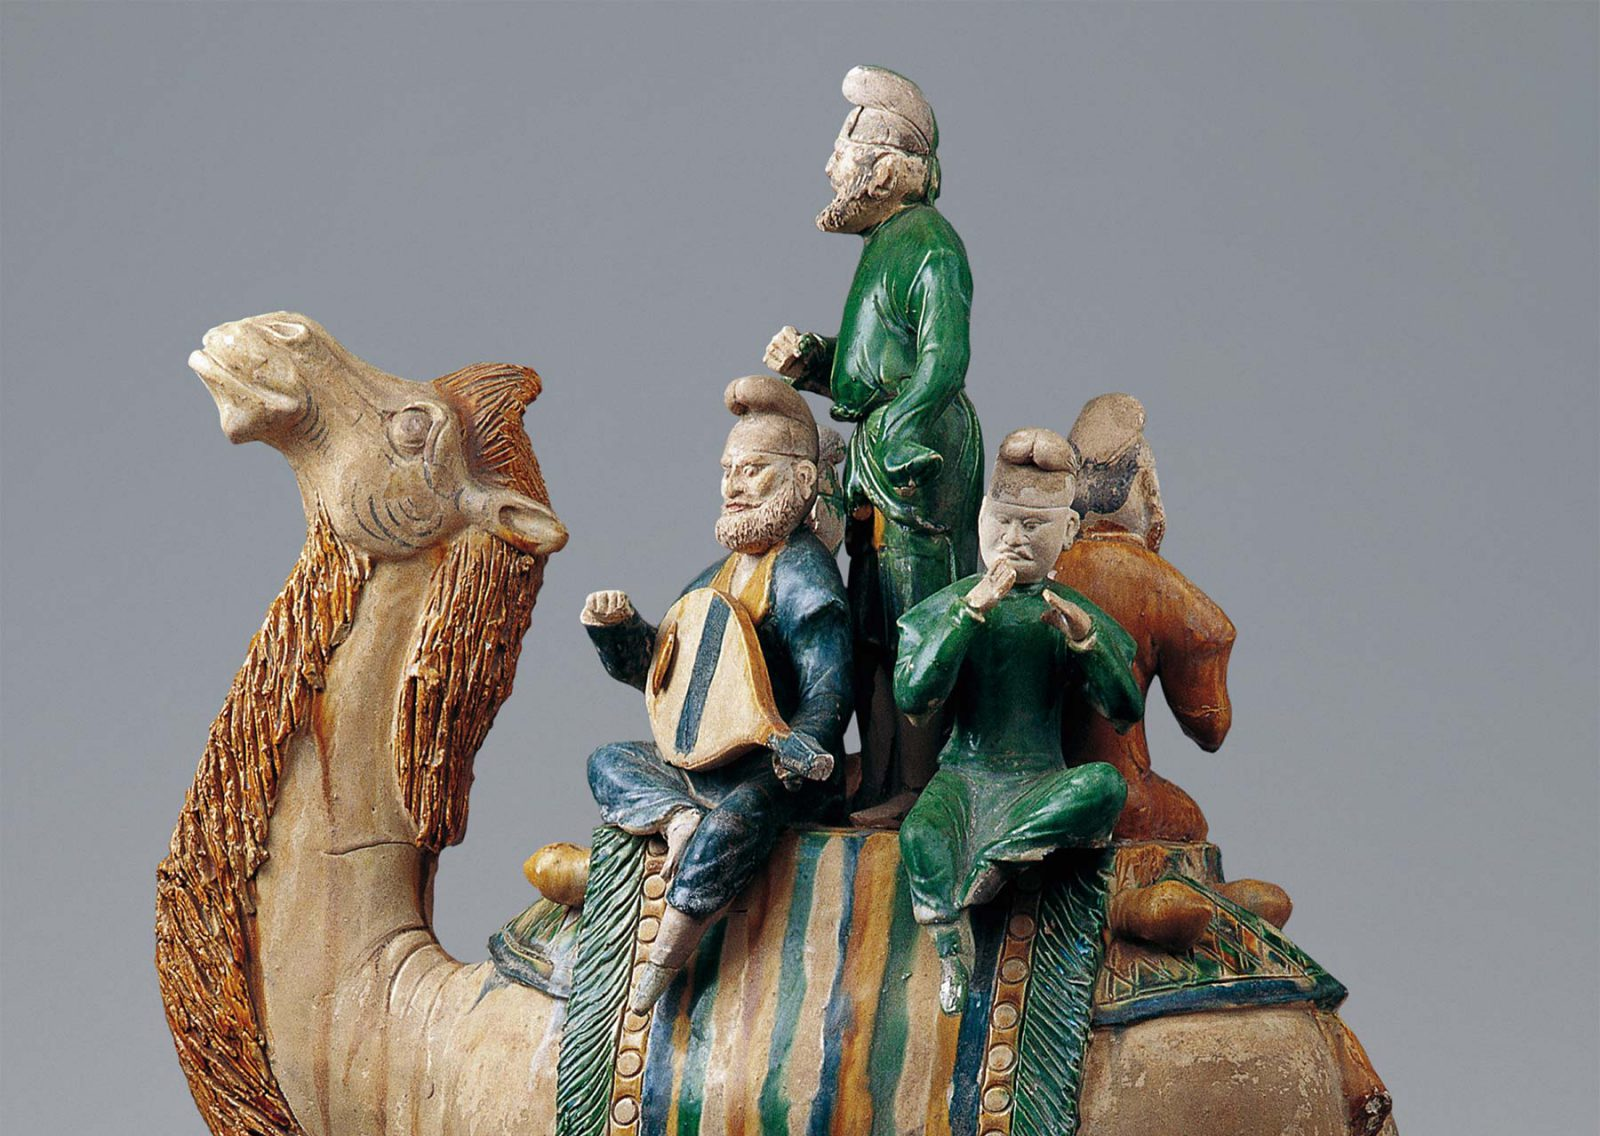 Four musicans on a camel